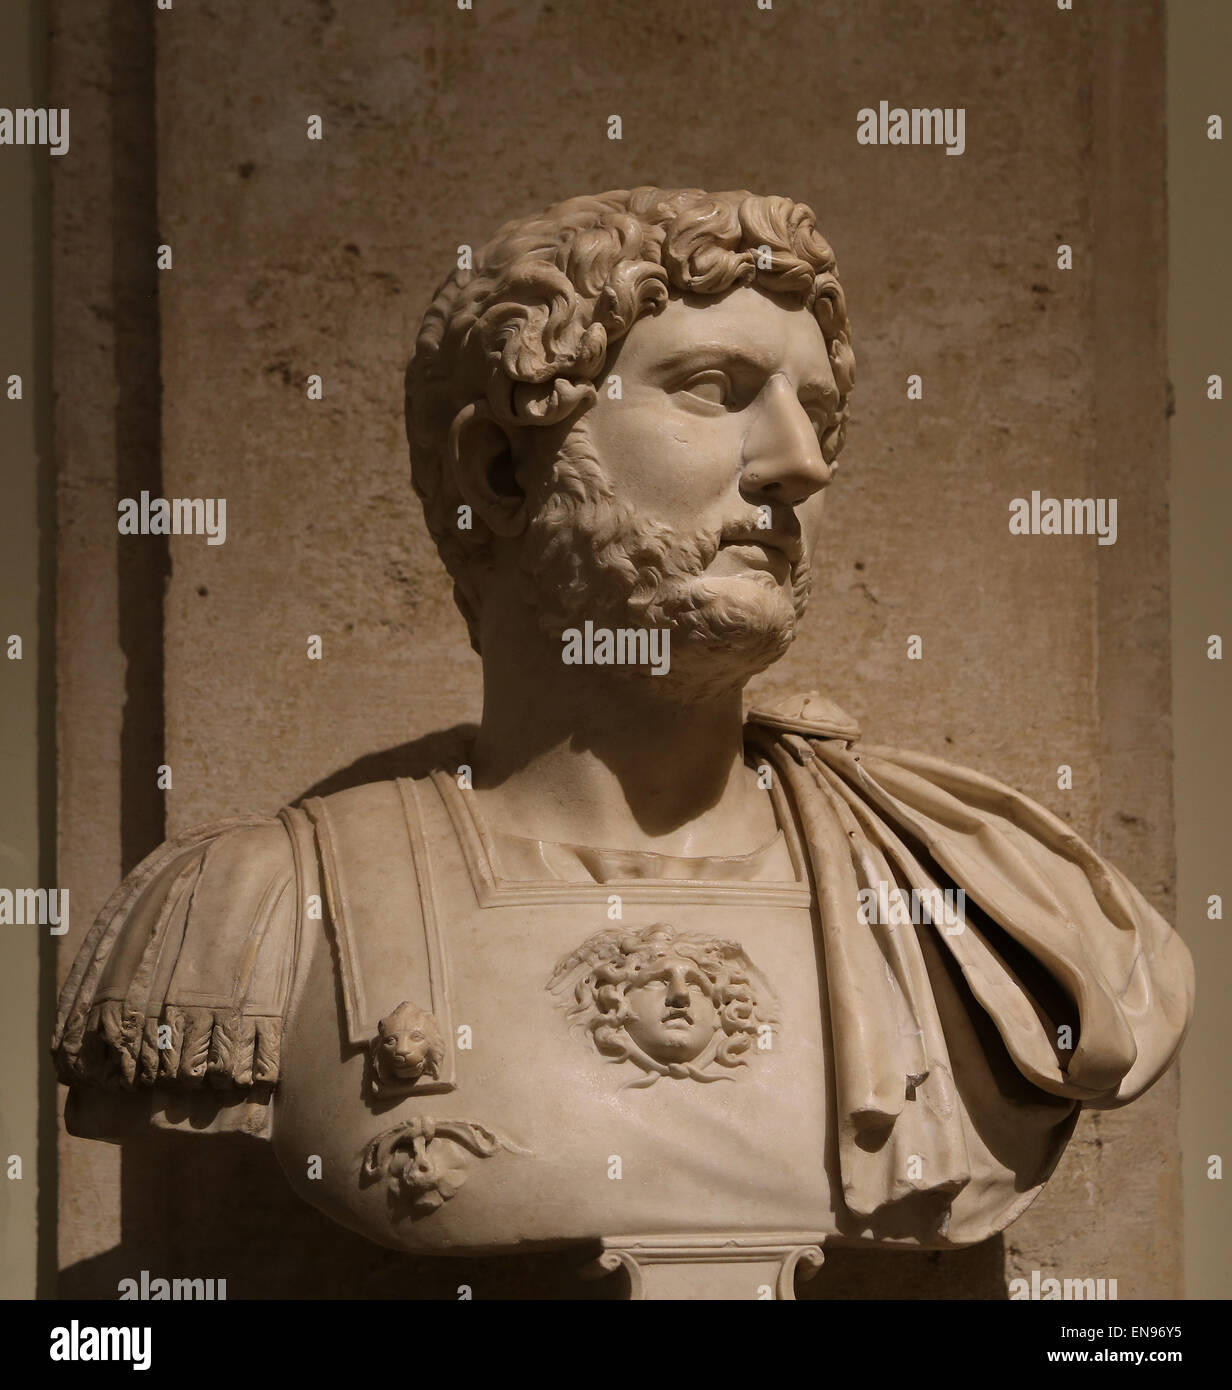 Bust of roman emperor Hadrian in lorica. Marble. 117-138 AD. Capitoline Museums. Rome. Italy. - Stock Image